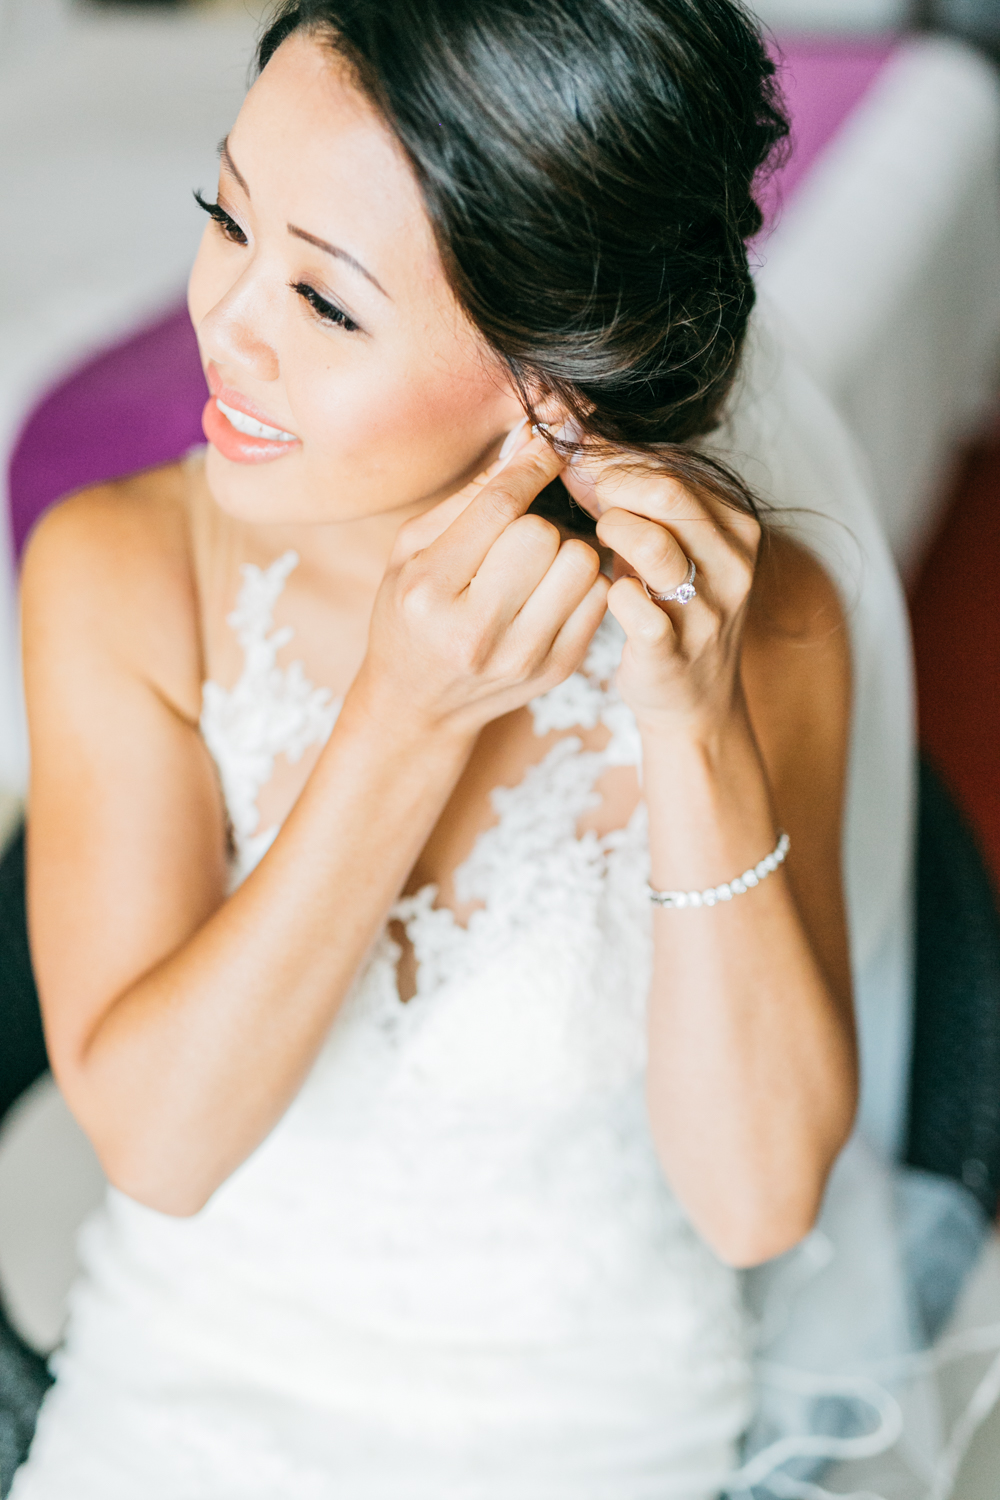 Bride getting ready inside suite at Royalton White Sands Resort in Jamaica